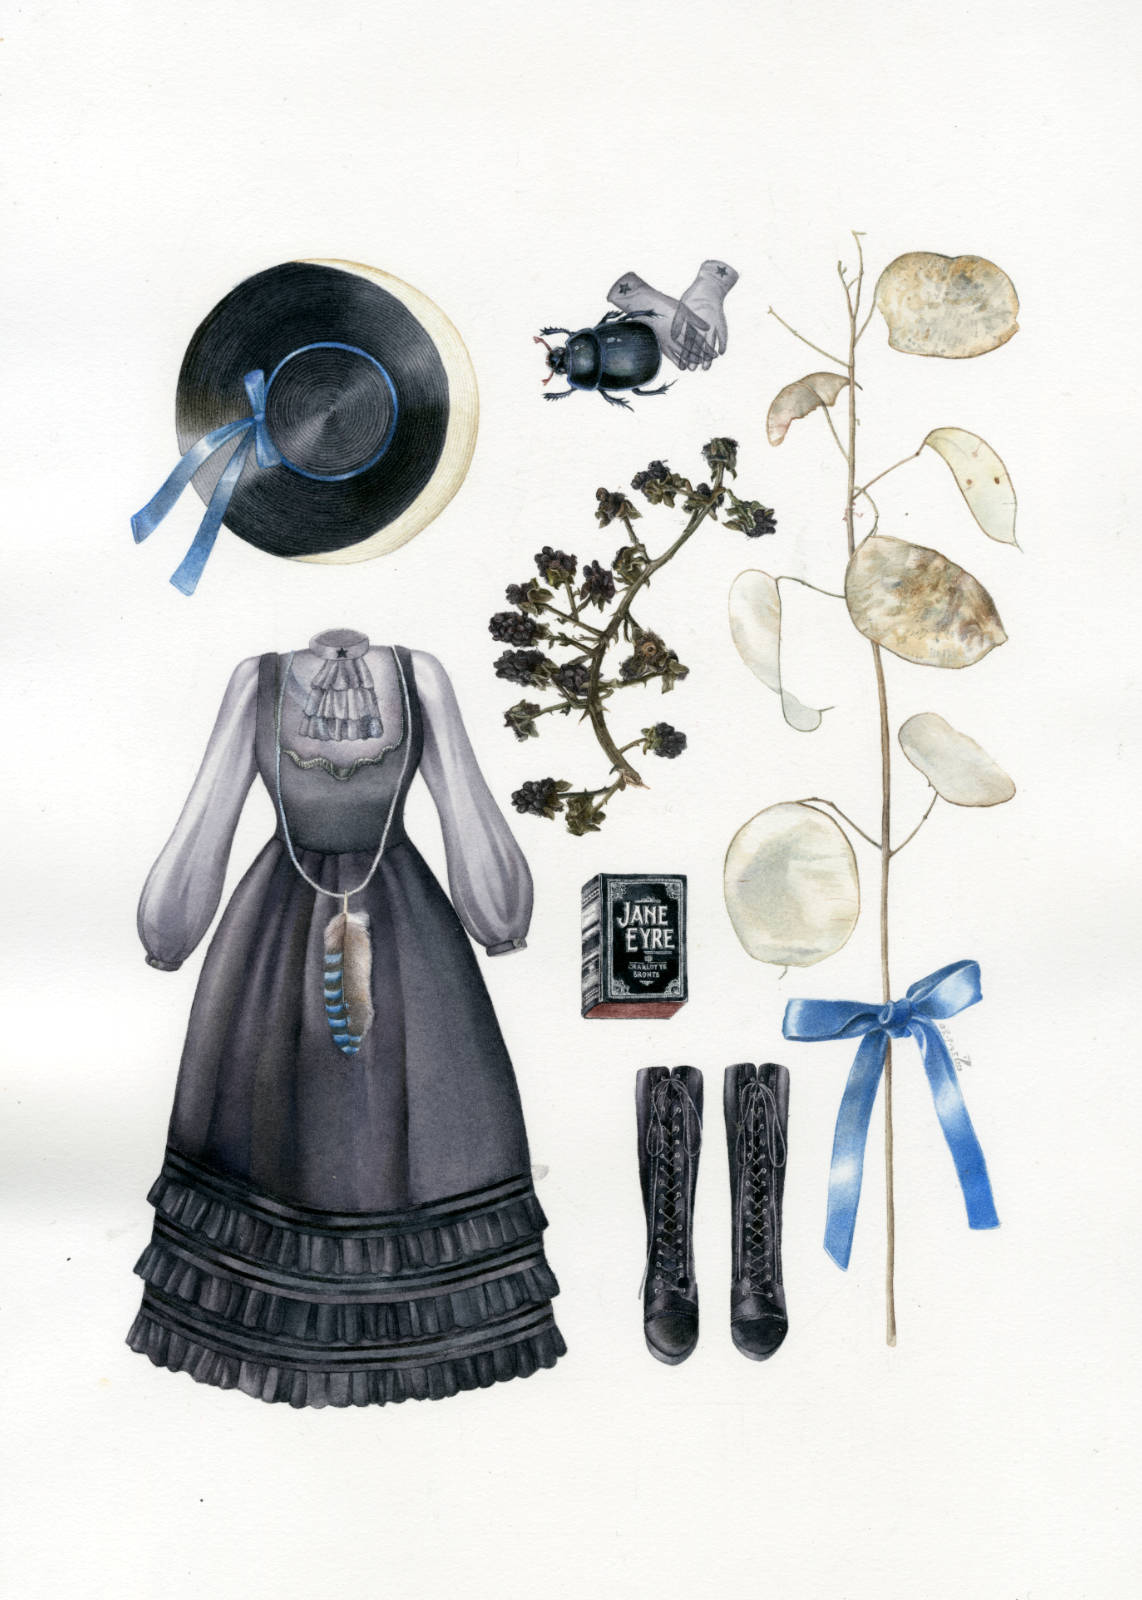 Technical illustration of a herbarium made up with fashionable lolita clothing of gothic obedience, and an overall witch theme : dried blackthorn and lunaria branchs, a moon hat, boots, a copy of Jane Eyre, a beetle and blue ribbons